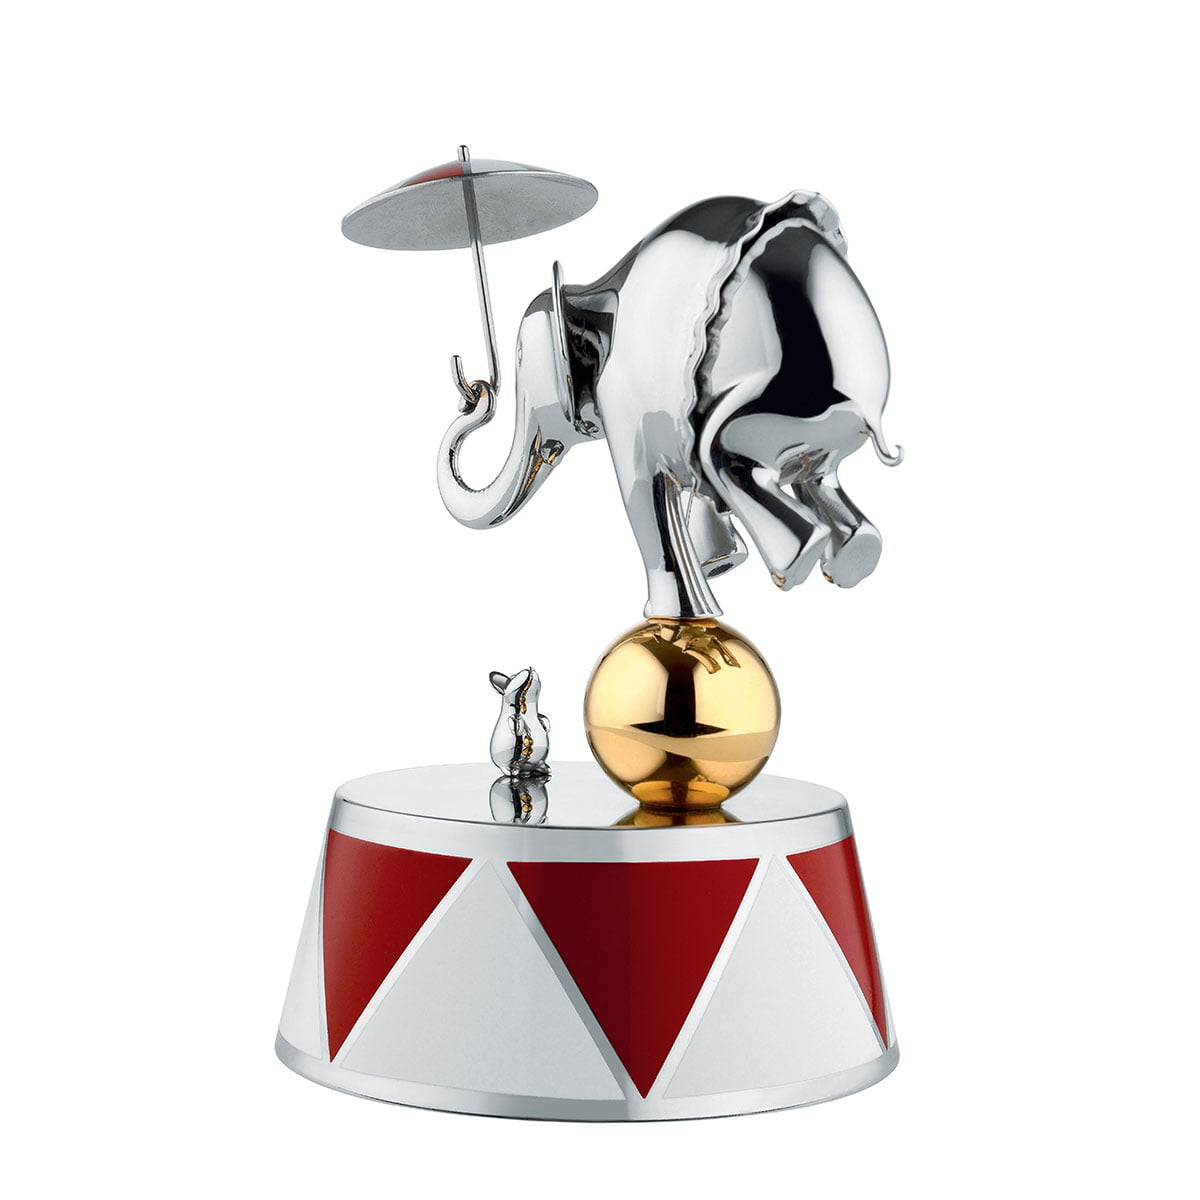 limited edition ballerina music box by alessi - the ballerina carillon (limited edition) by alessi